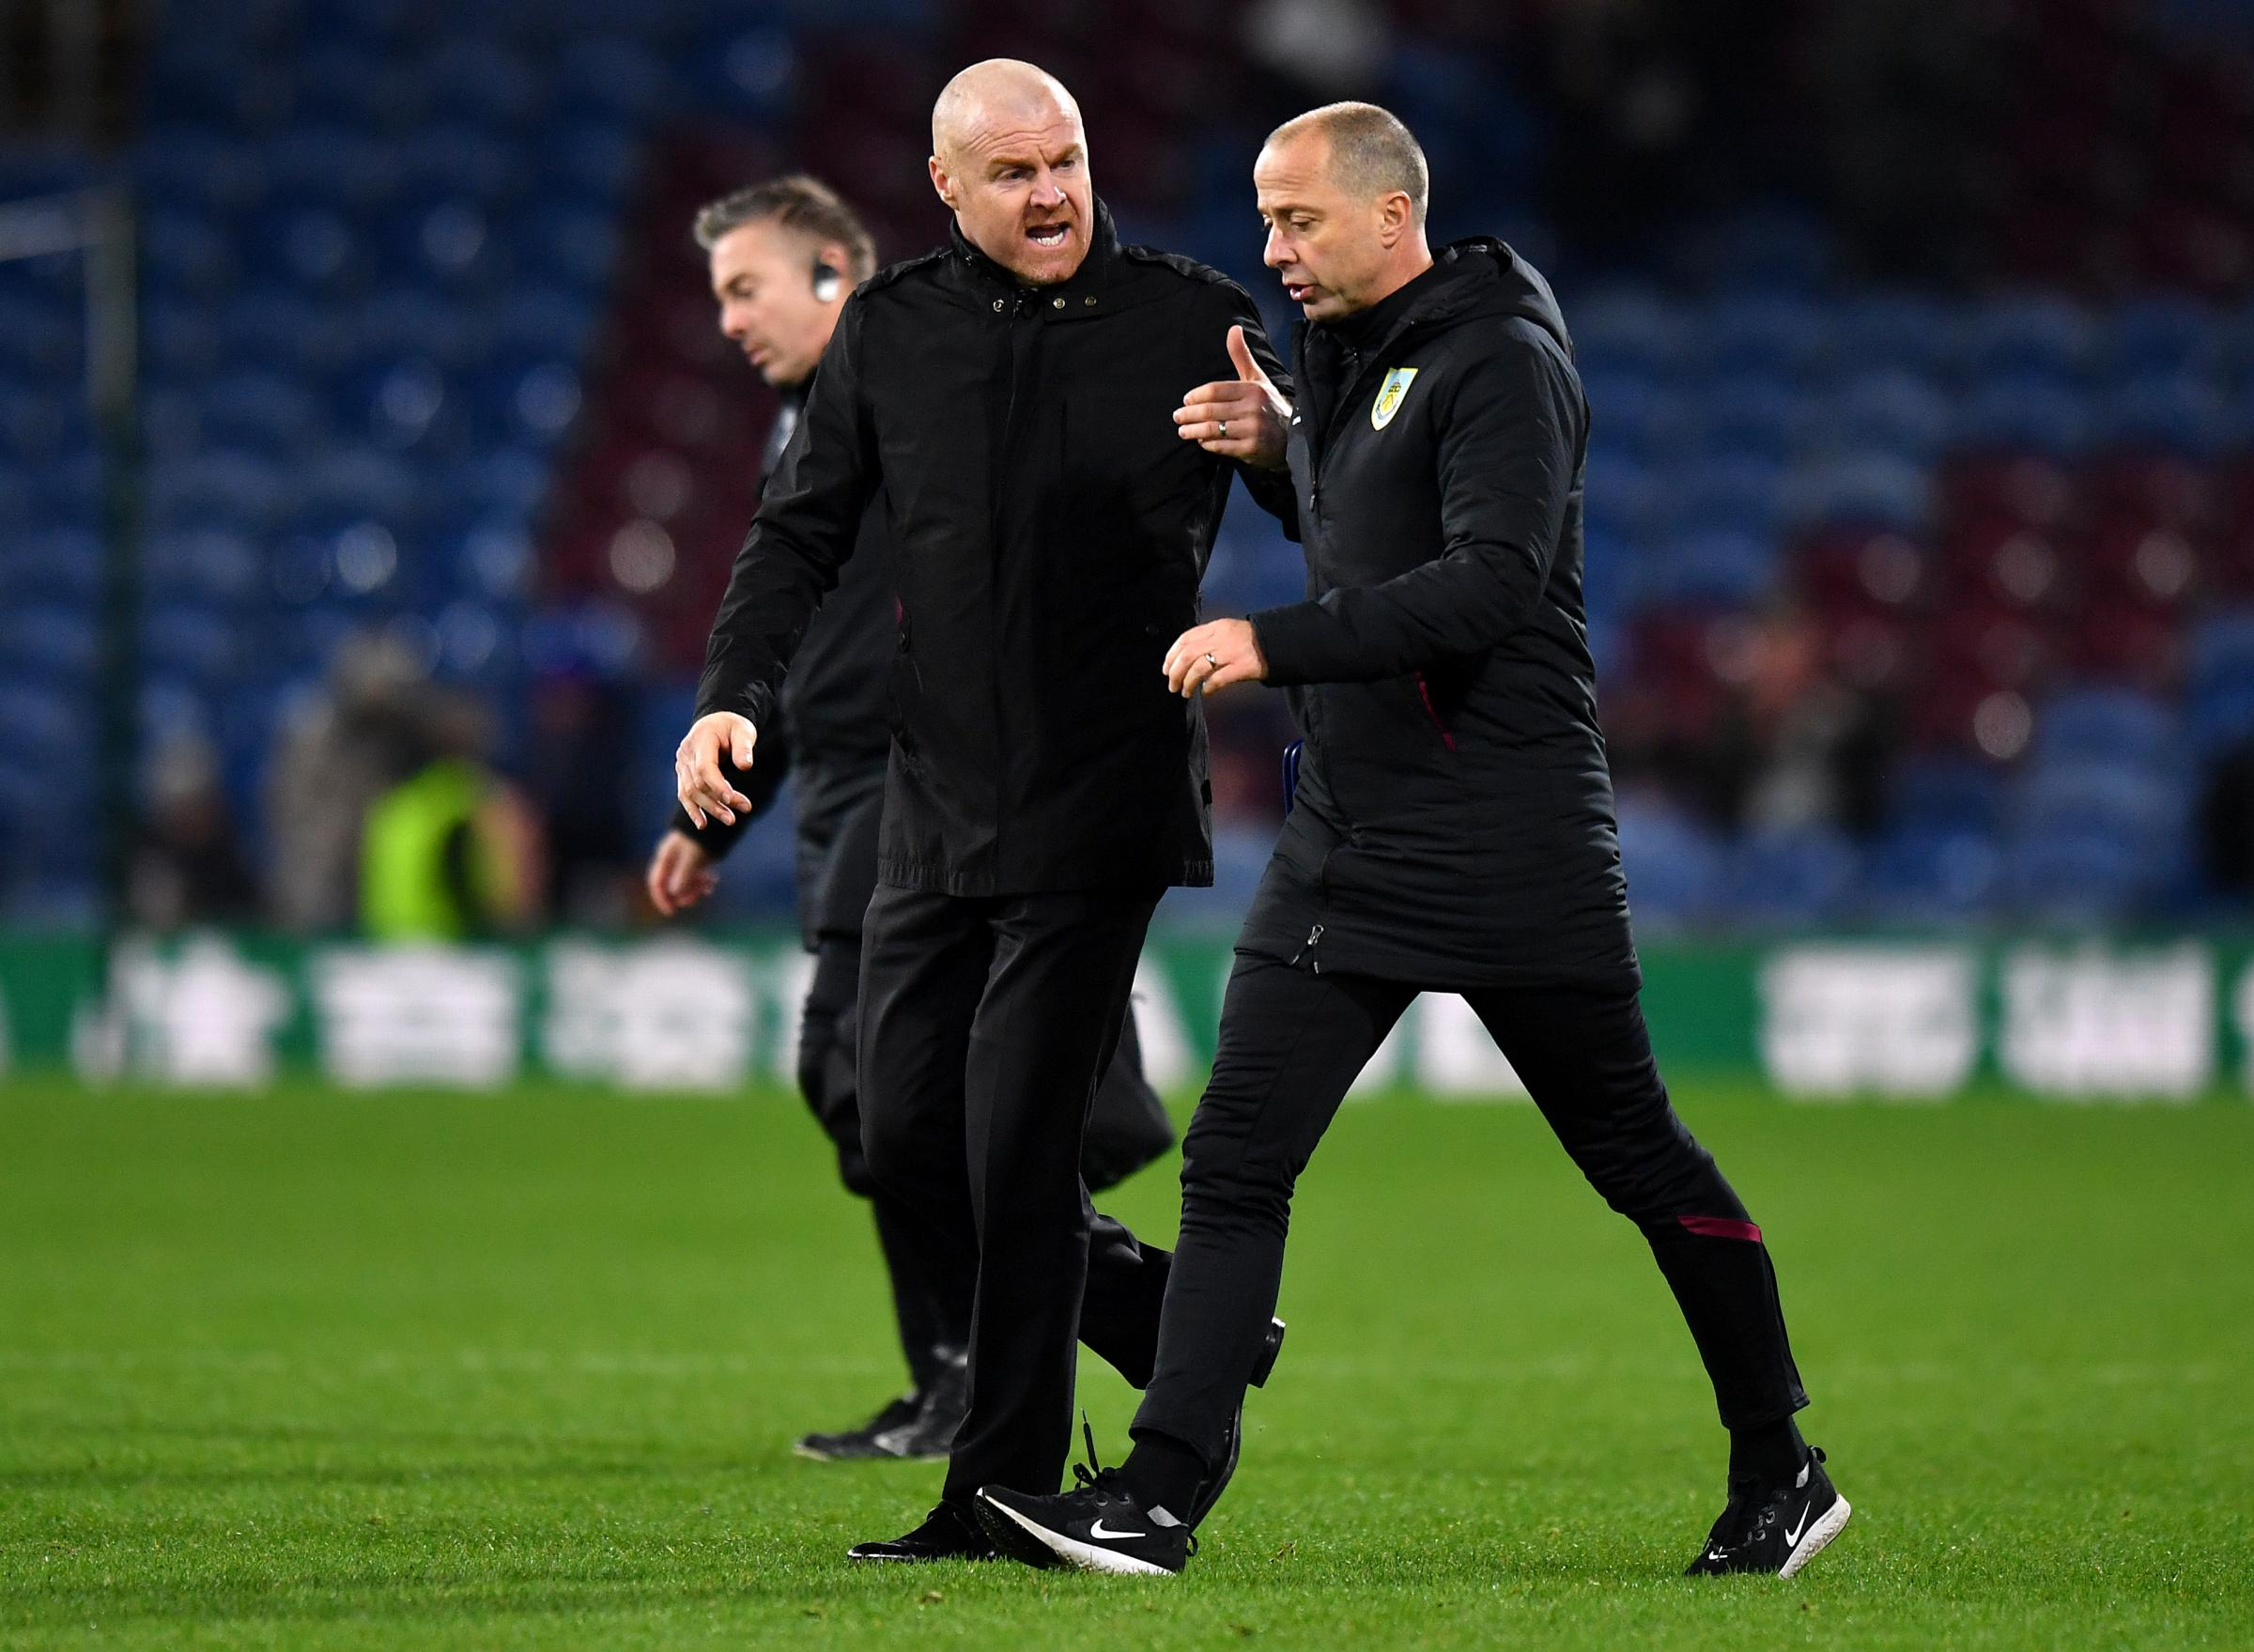 Burnley boss Sean Dyche's assessment of Norwich FA Cup exit